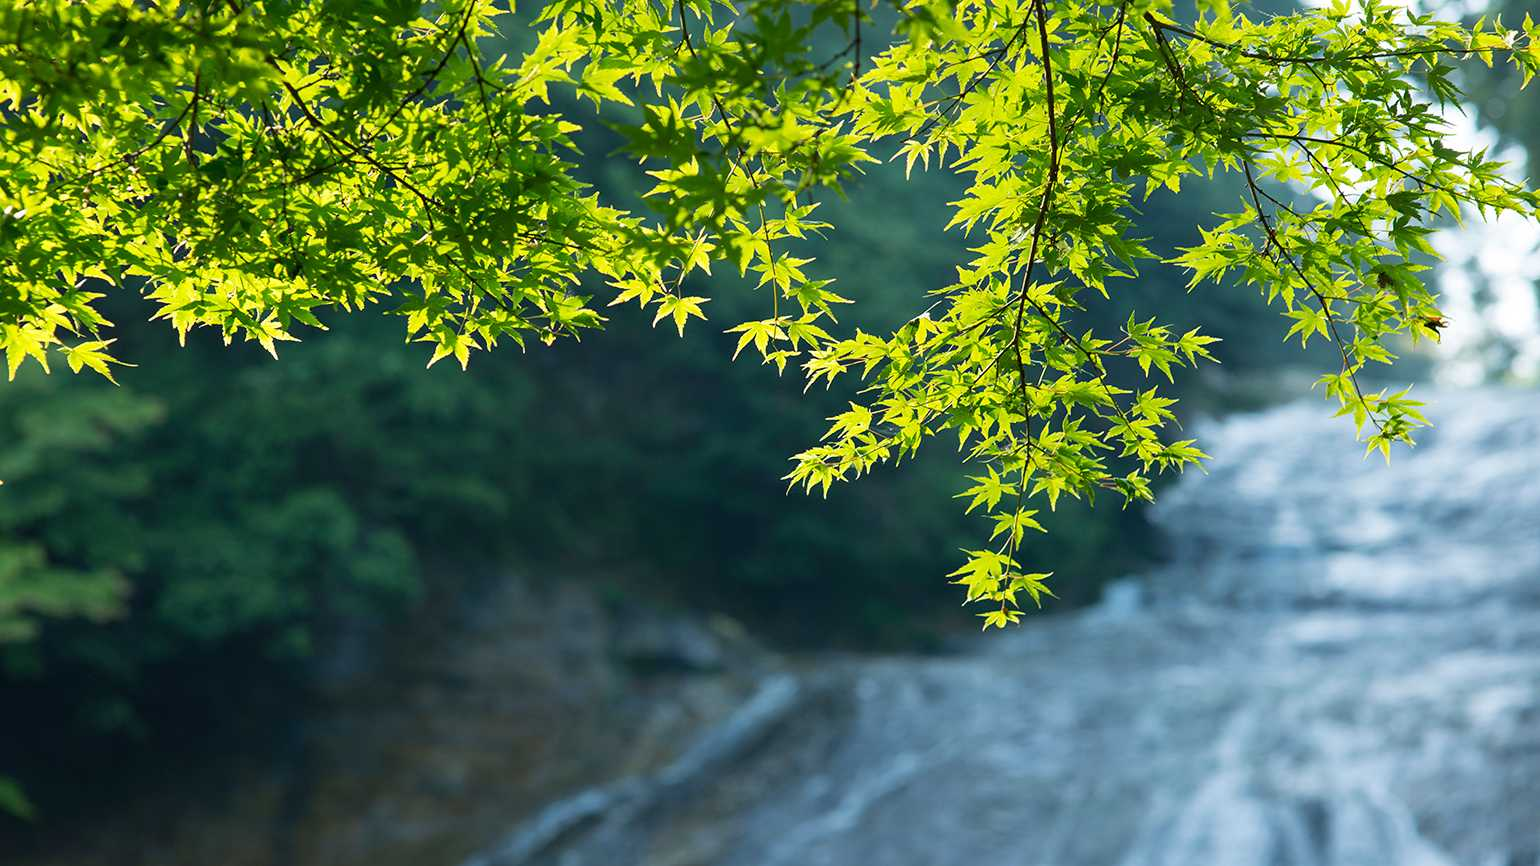 Bright green spring leafs sprout with a waterfall behind them